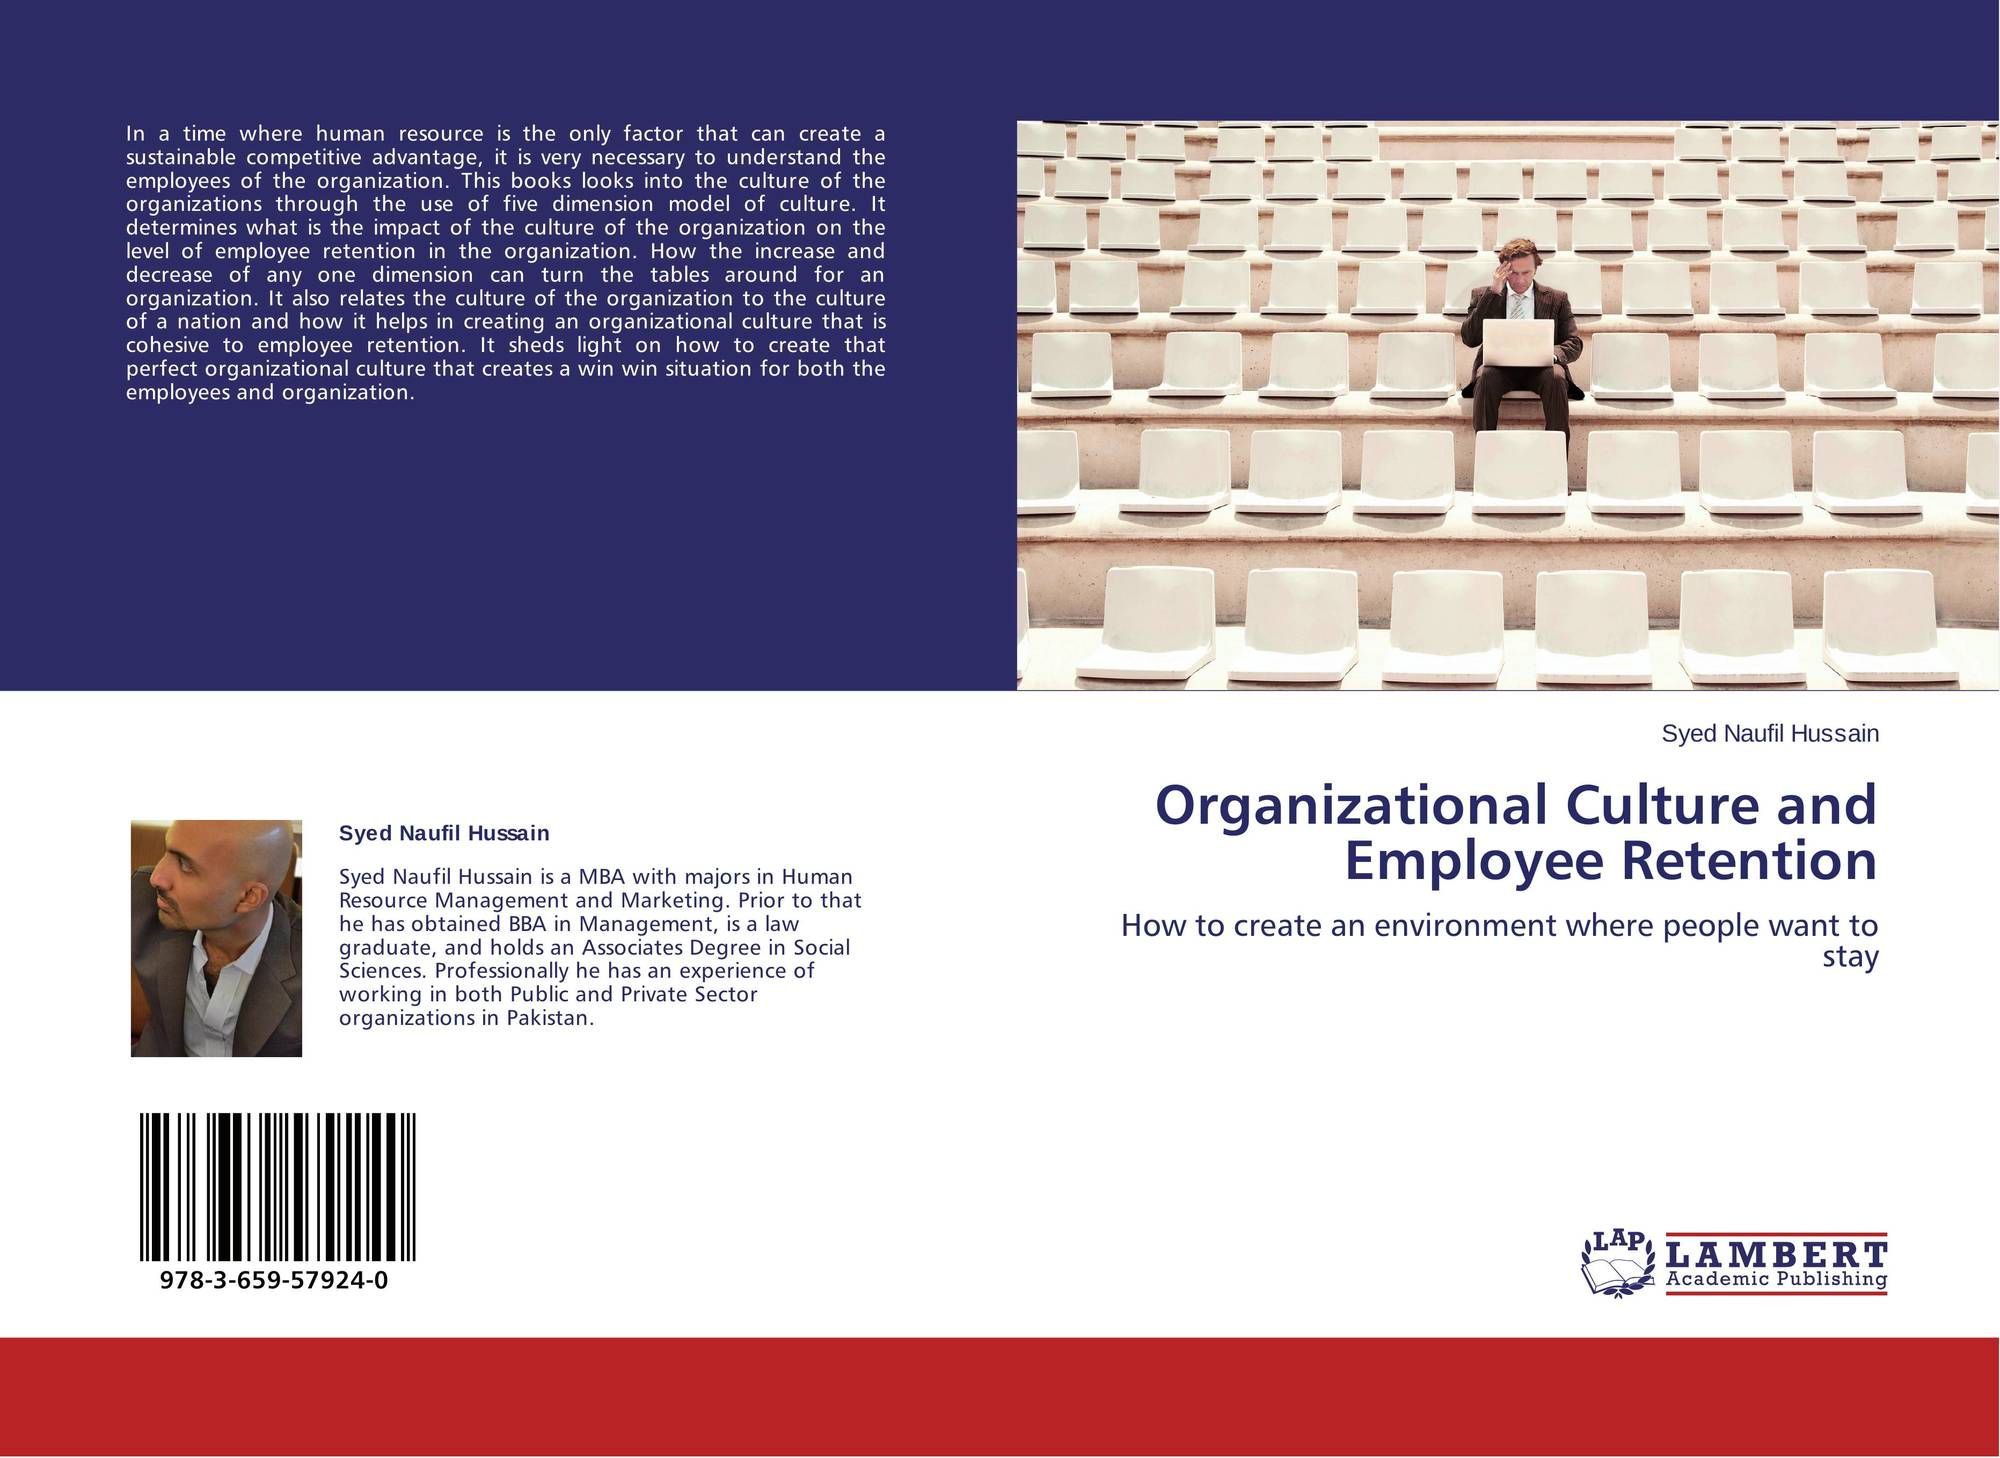 employee attrition and retention exploring the dimensions in the urban centric bpo industry Their combined citations are counted only for the first article  employee attrition and retention: exploring the dimensions in the urban centric bpo industry s.